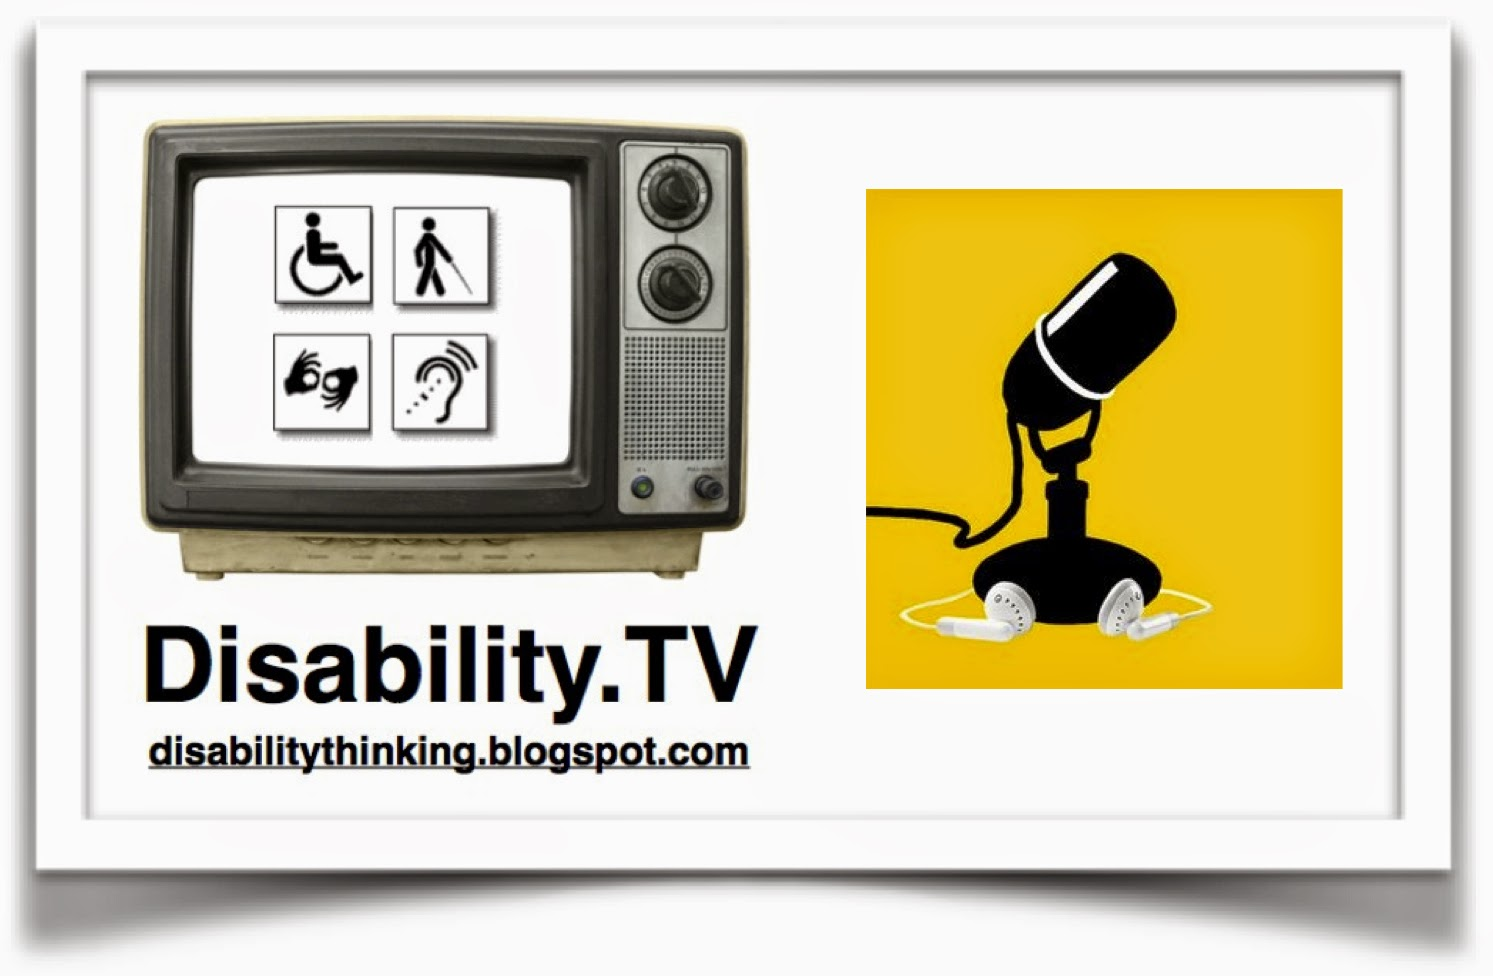 Disability.TV logo on the left, podcast microphone icon on the right